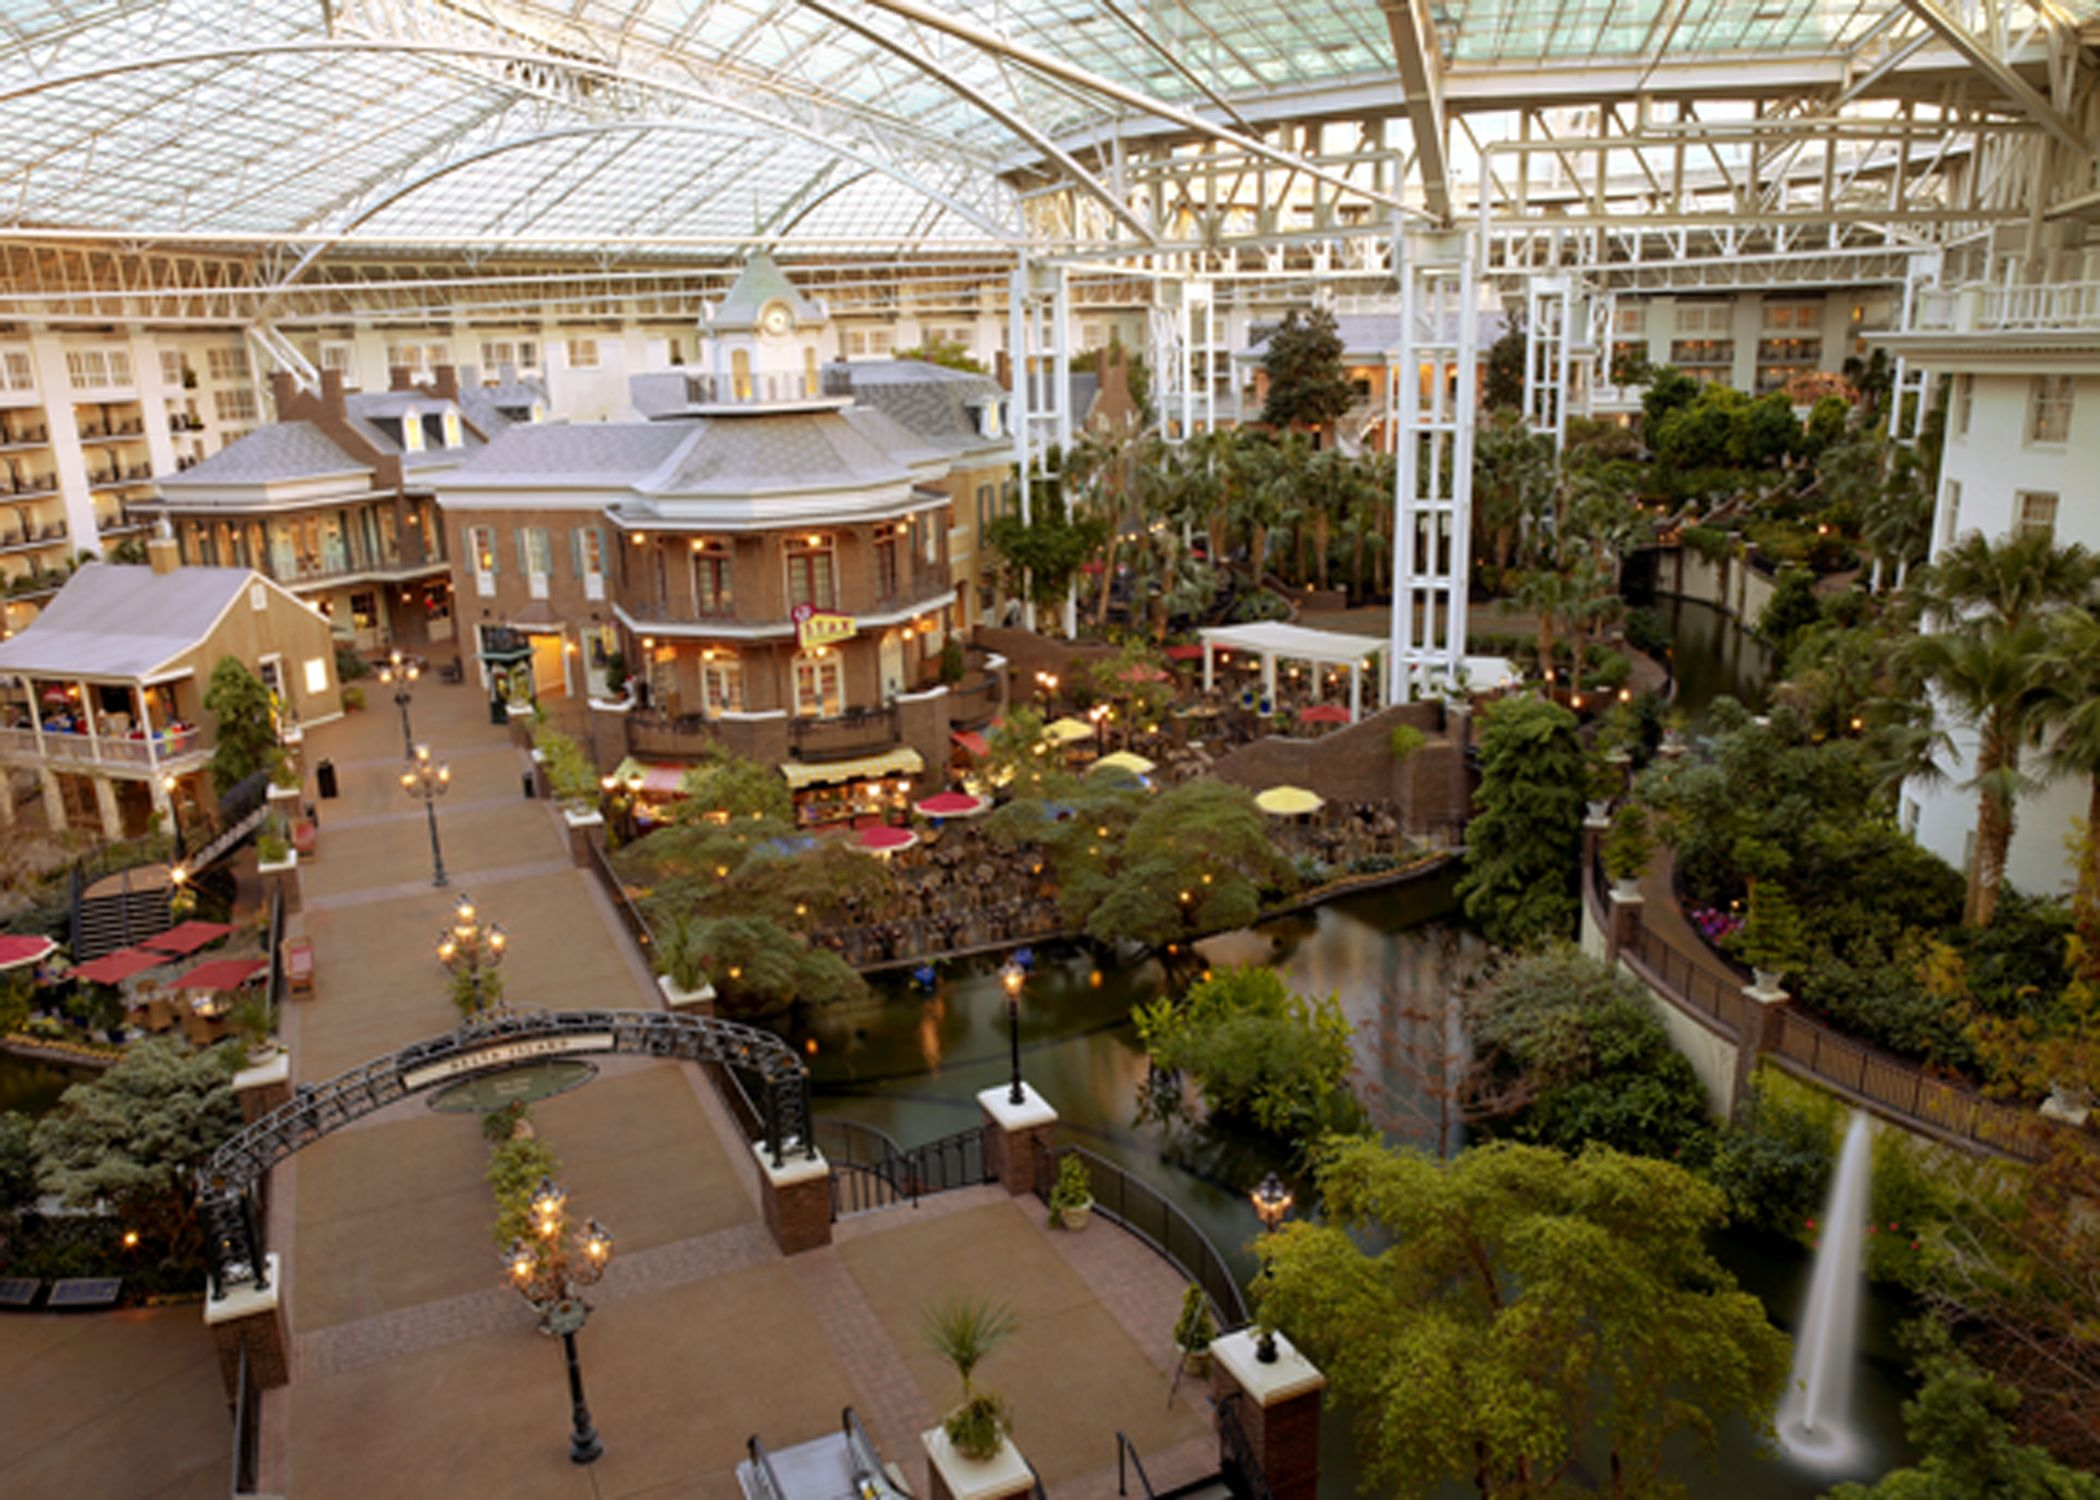 Lord Opryland Hotel Nashville Tennesee Indoor Atrium Filled With S Bars Restraunts And